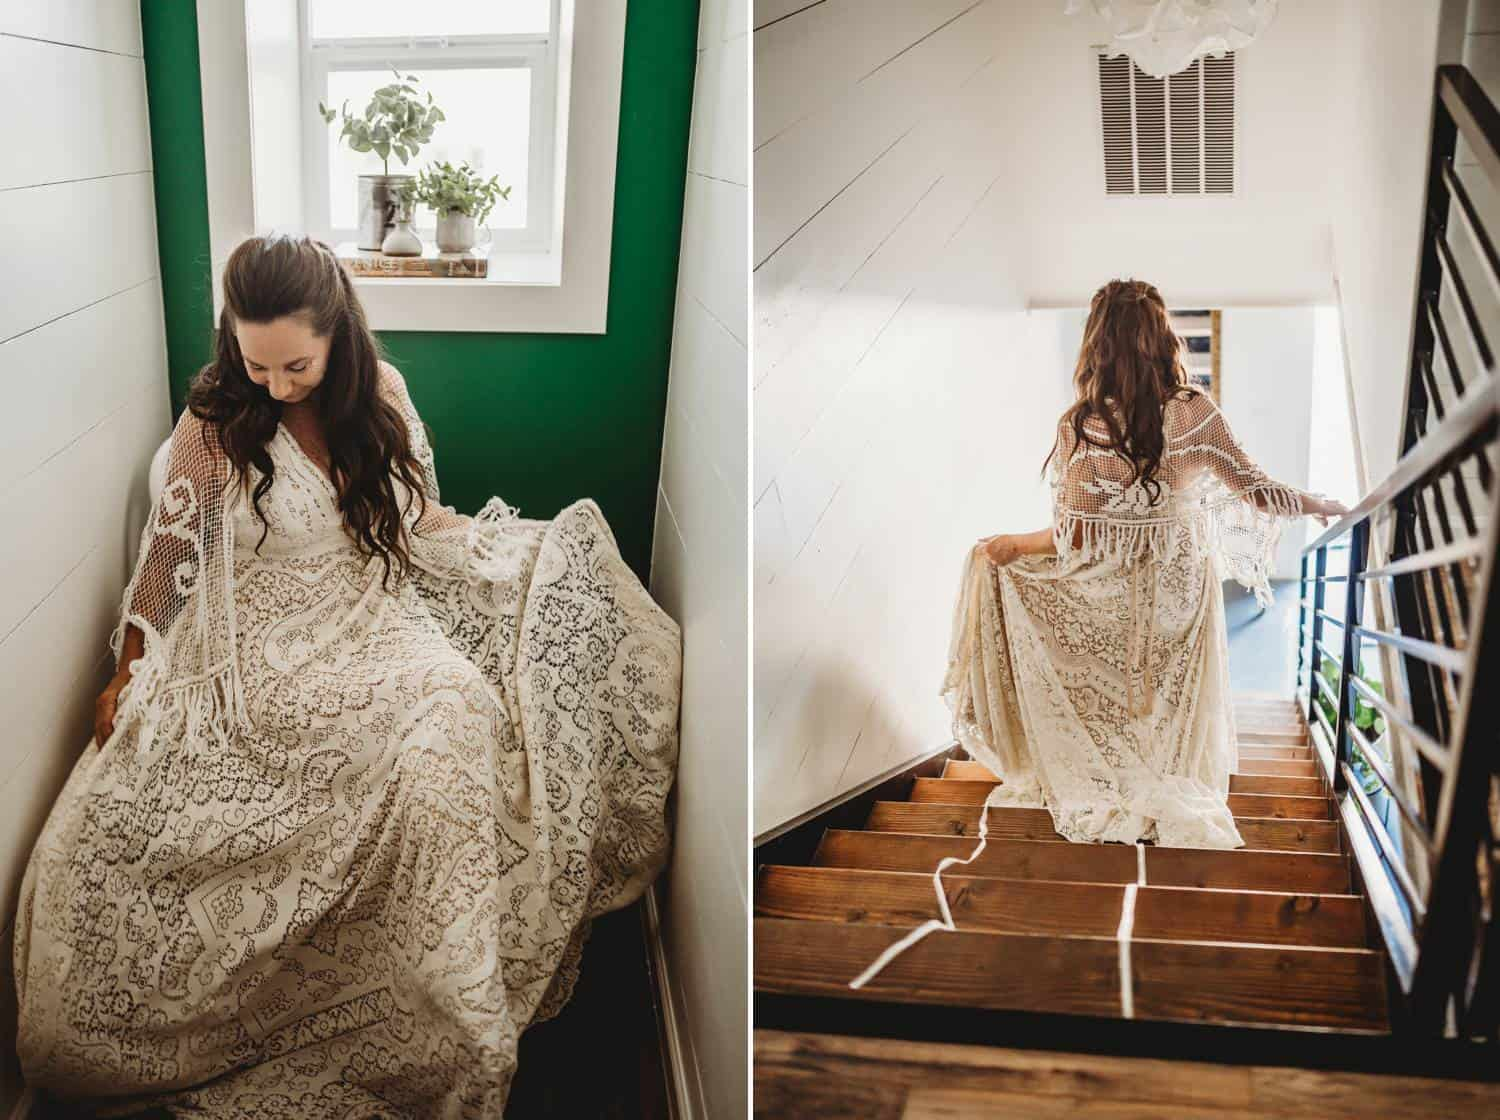 A bride twirls in her wedding dress in a brightly-lit room with a bright green wall. In another photo of the same bride, she's facing away from the camera as she walks down a wooden staircase.